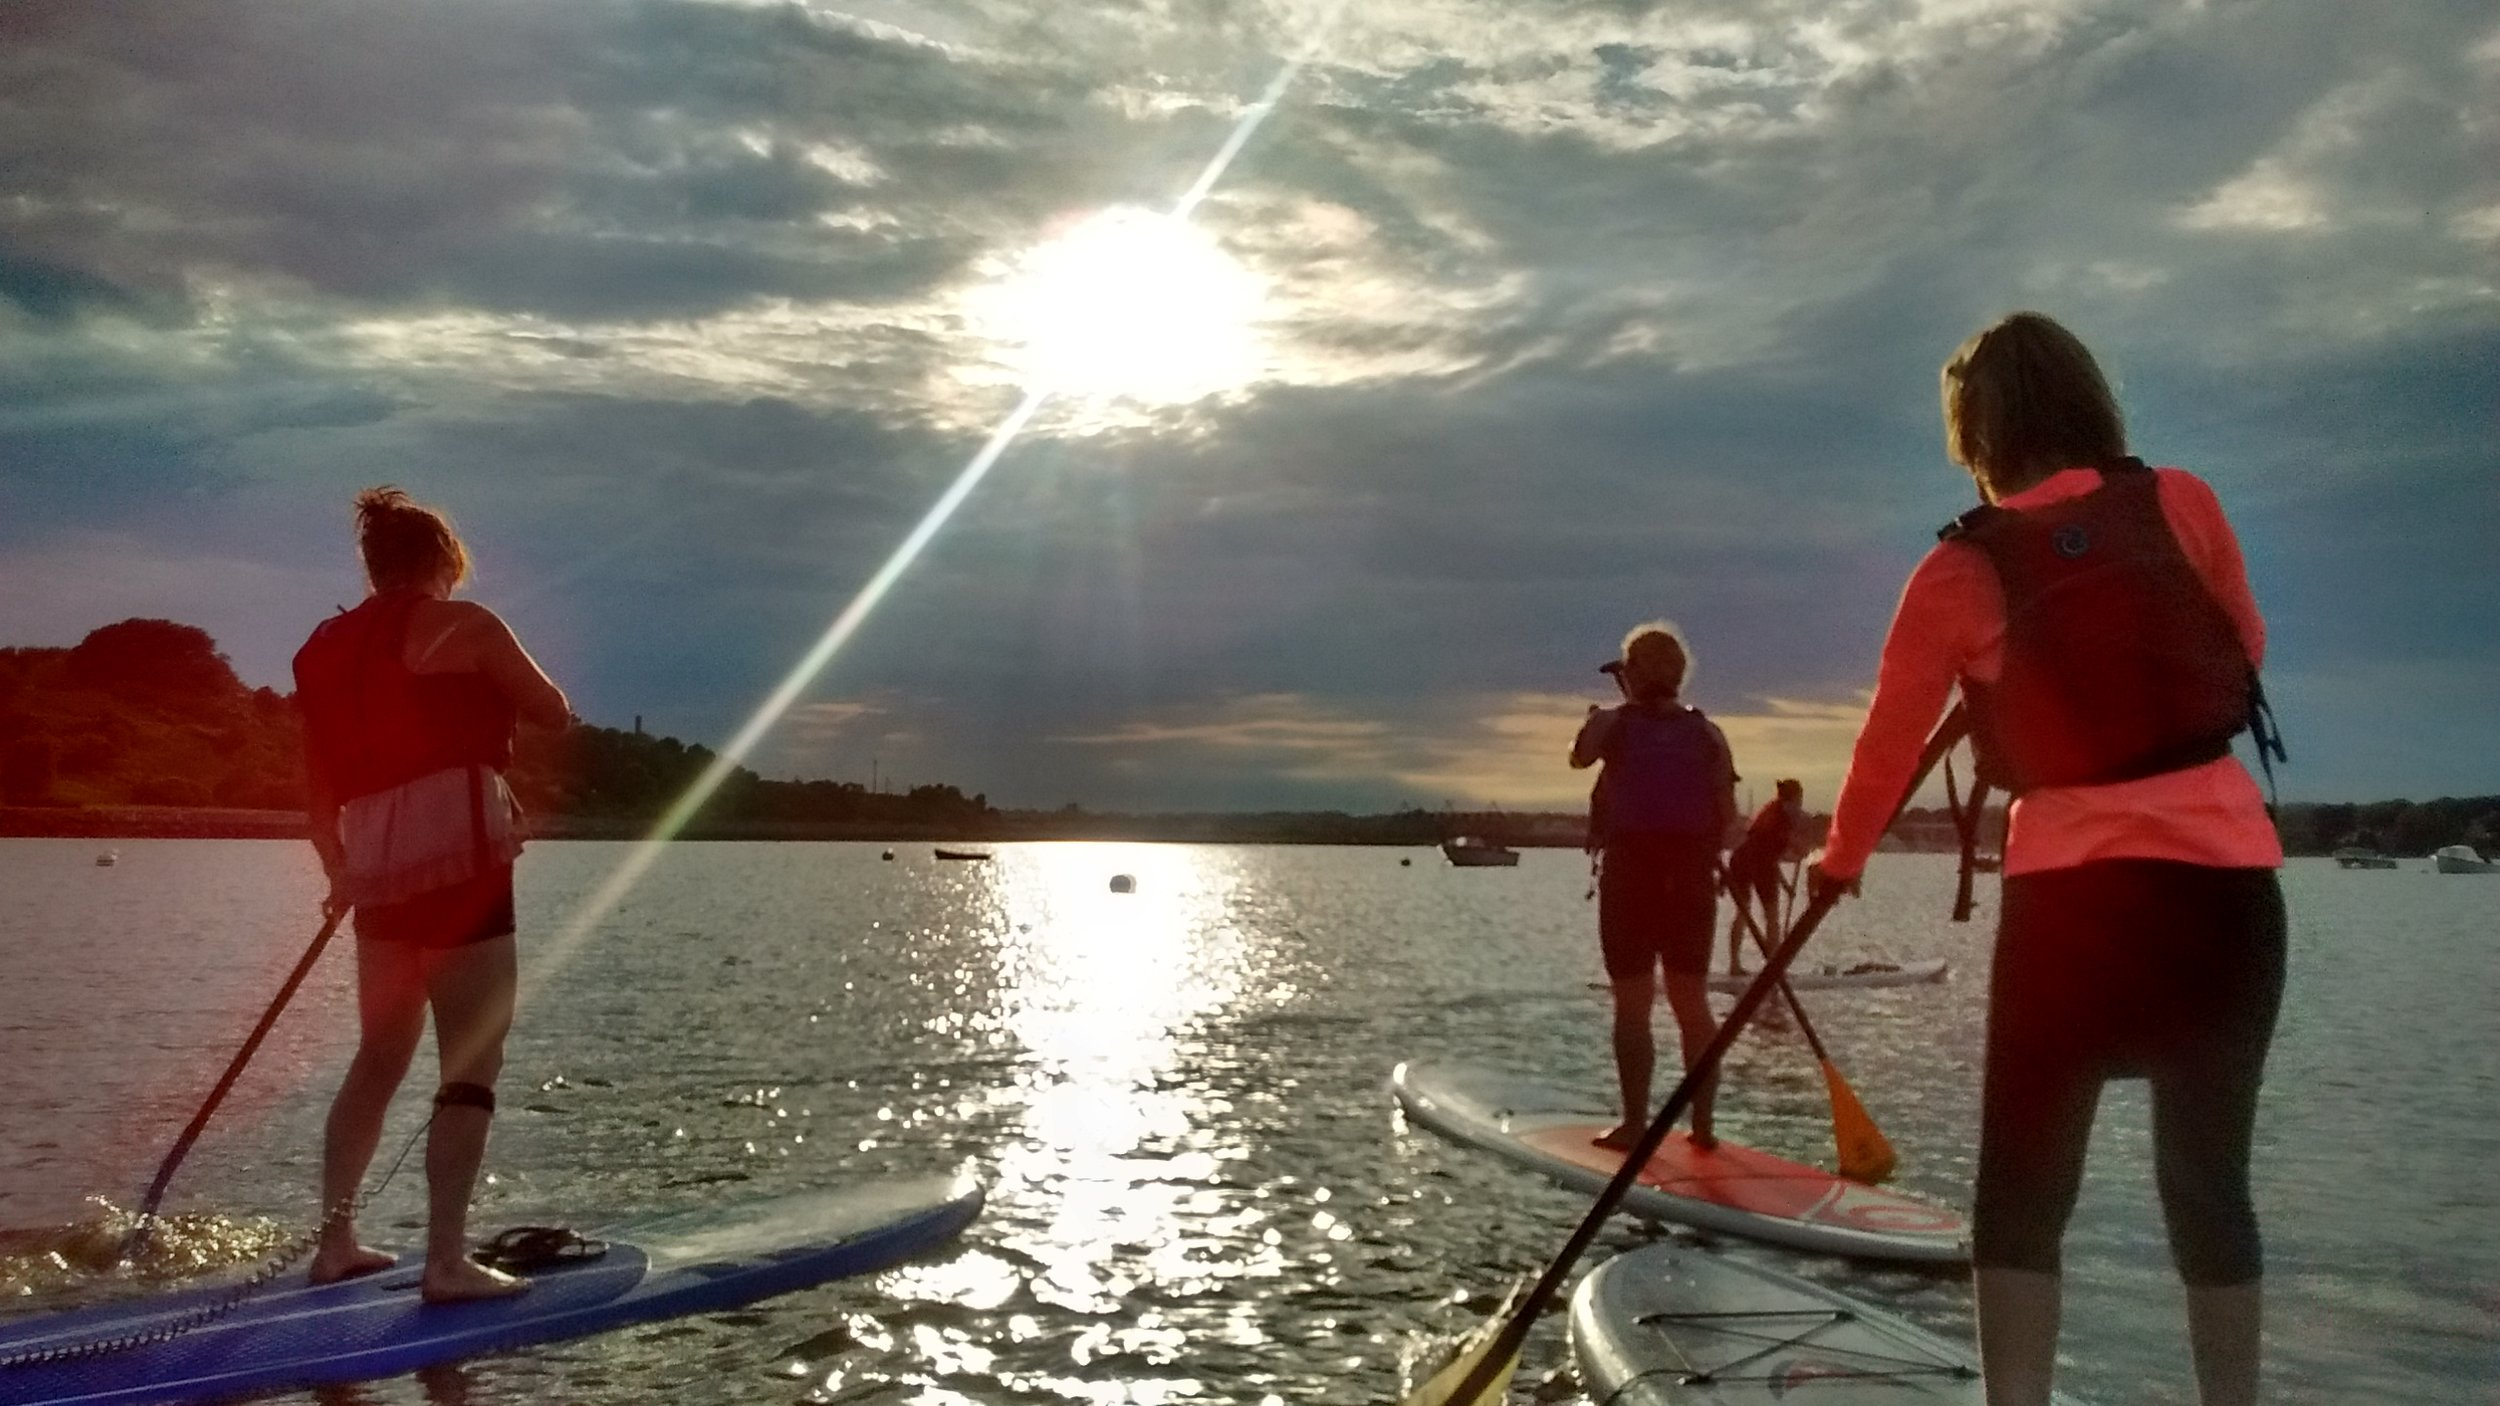 Full Moon SUP TOUR - On nights with Full Moons in July and August1.5 hours, $45 per person